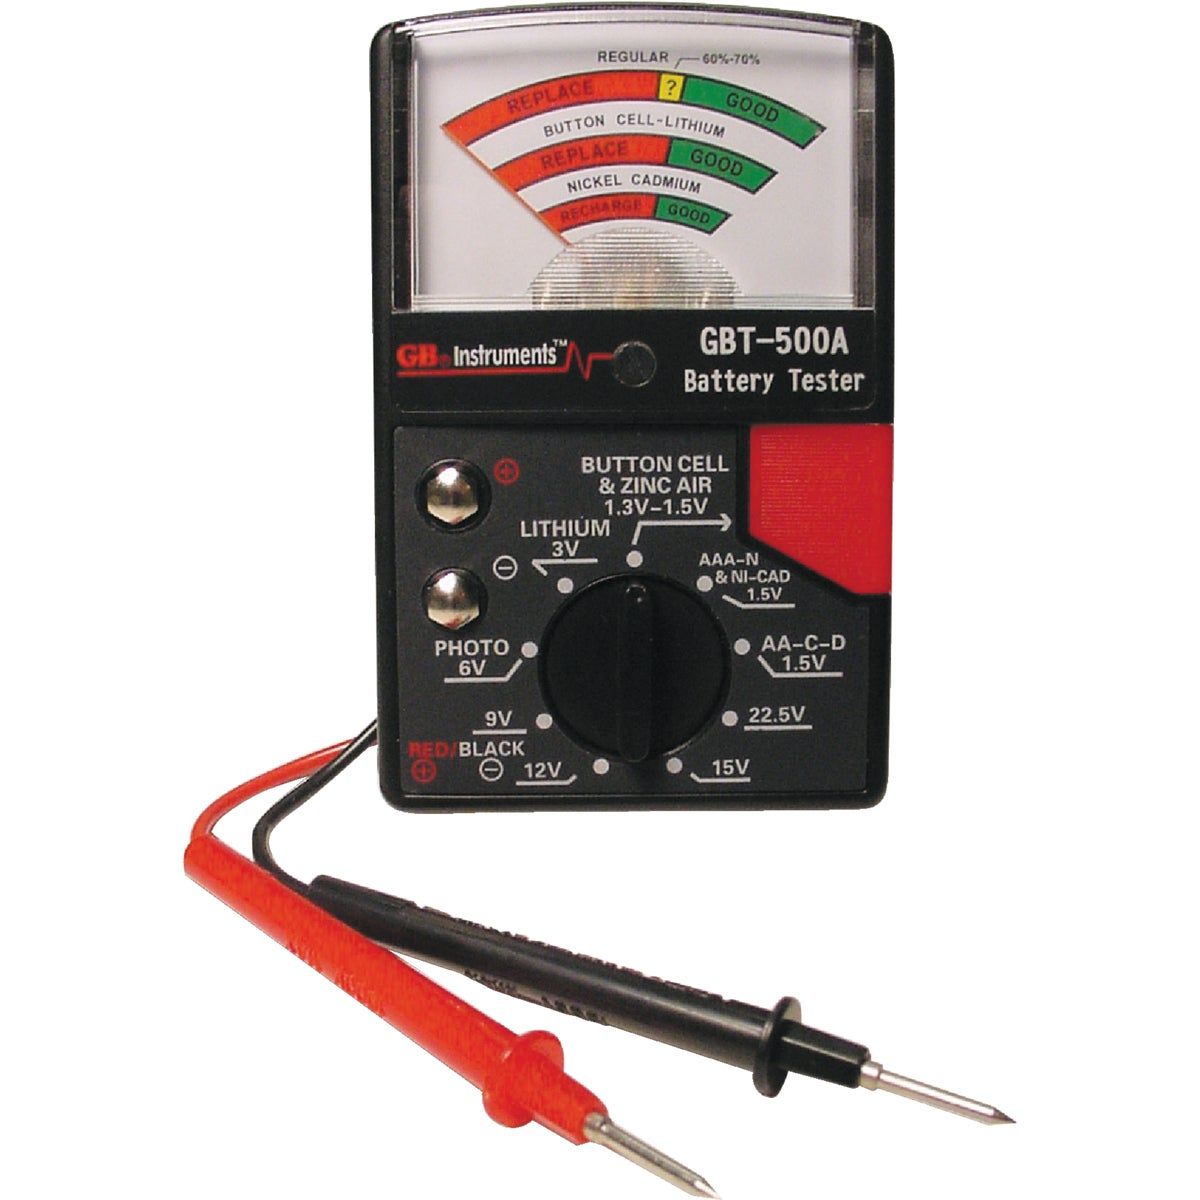 BATTERY TESTER - GBT-500A by G B Electrical Inc